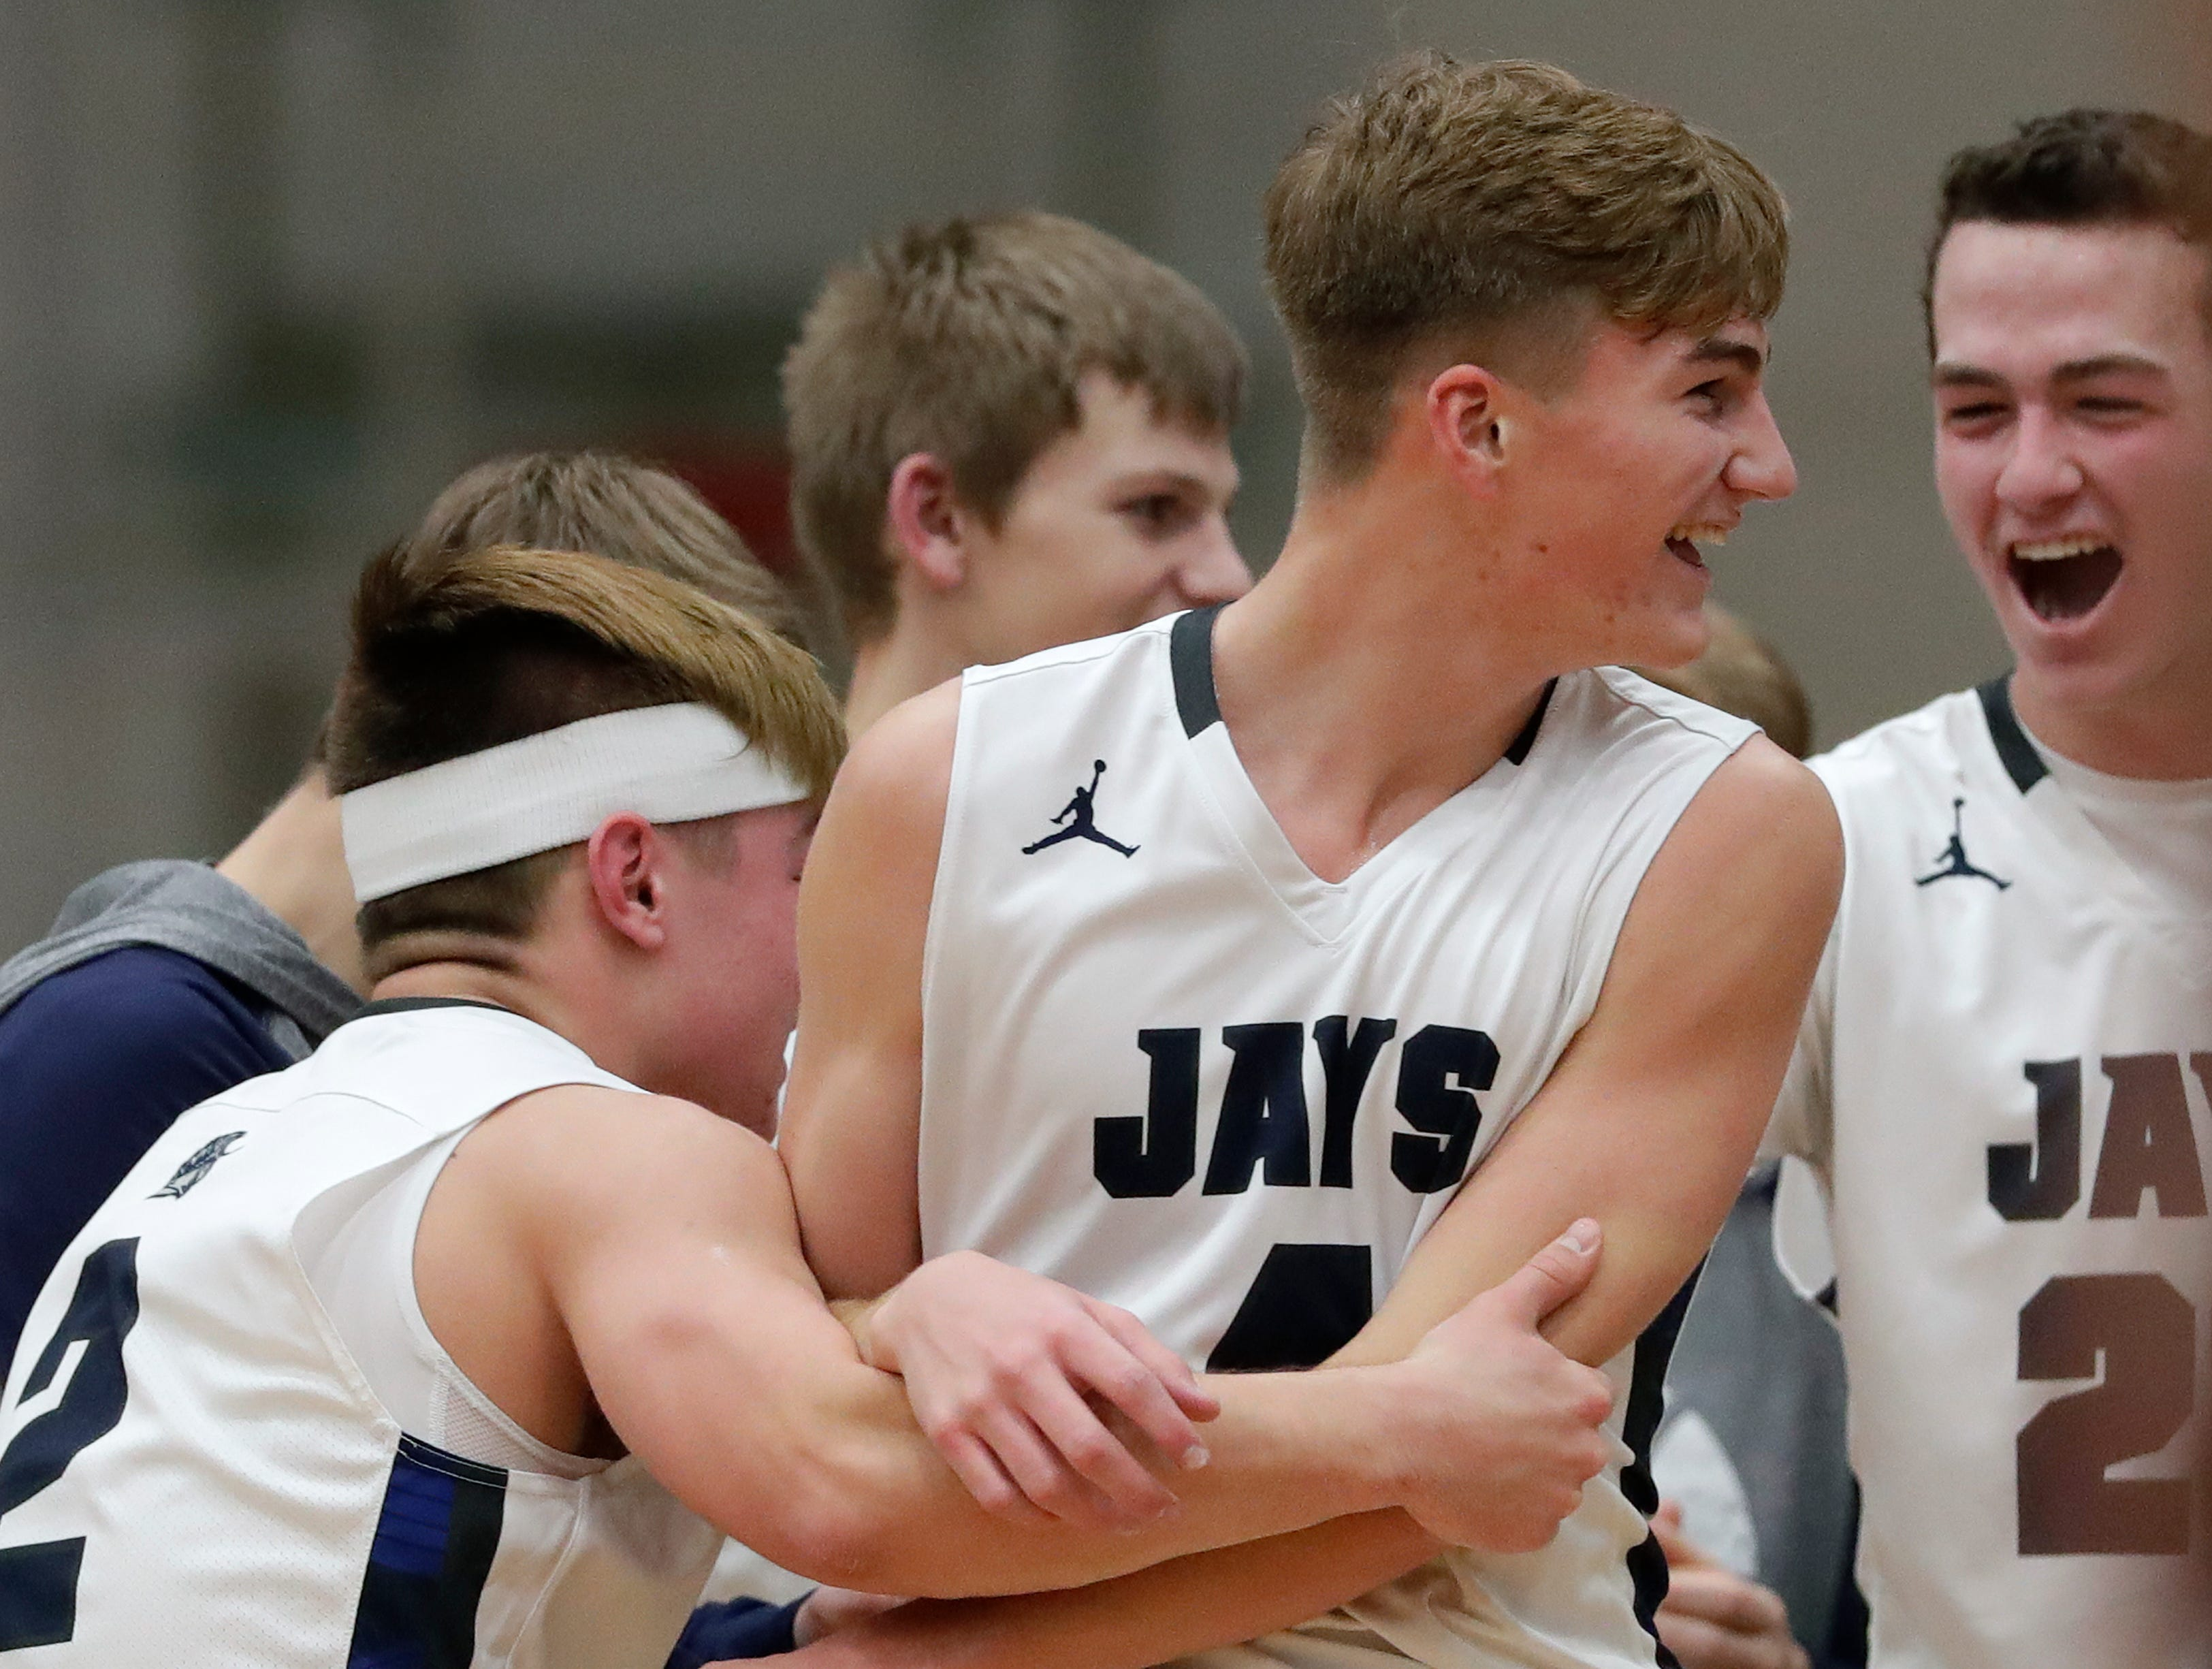 Menasha High School's Jacob Everson (4) is swarmed by teammates after becoming the career scoring leader by making a basket against West De Pere High School during their boys basketball game Tuesday, December 11, 2018, in Menasha, Wis. Dan Powers/USA TODAY NETWORK-Wisconsin